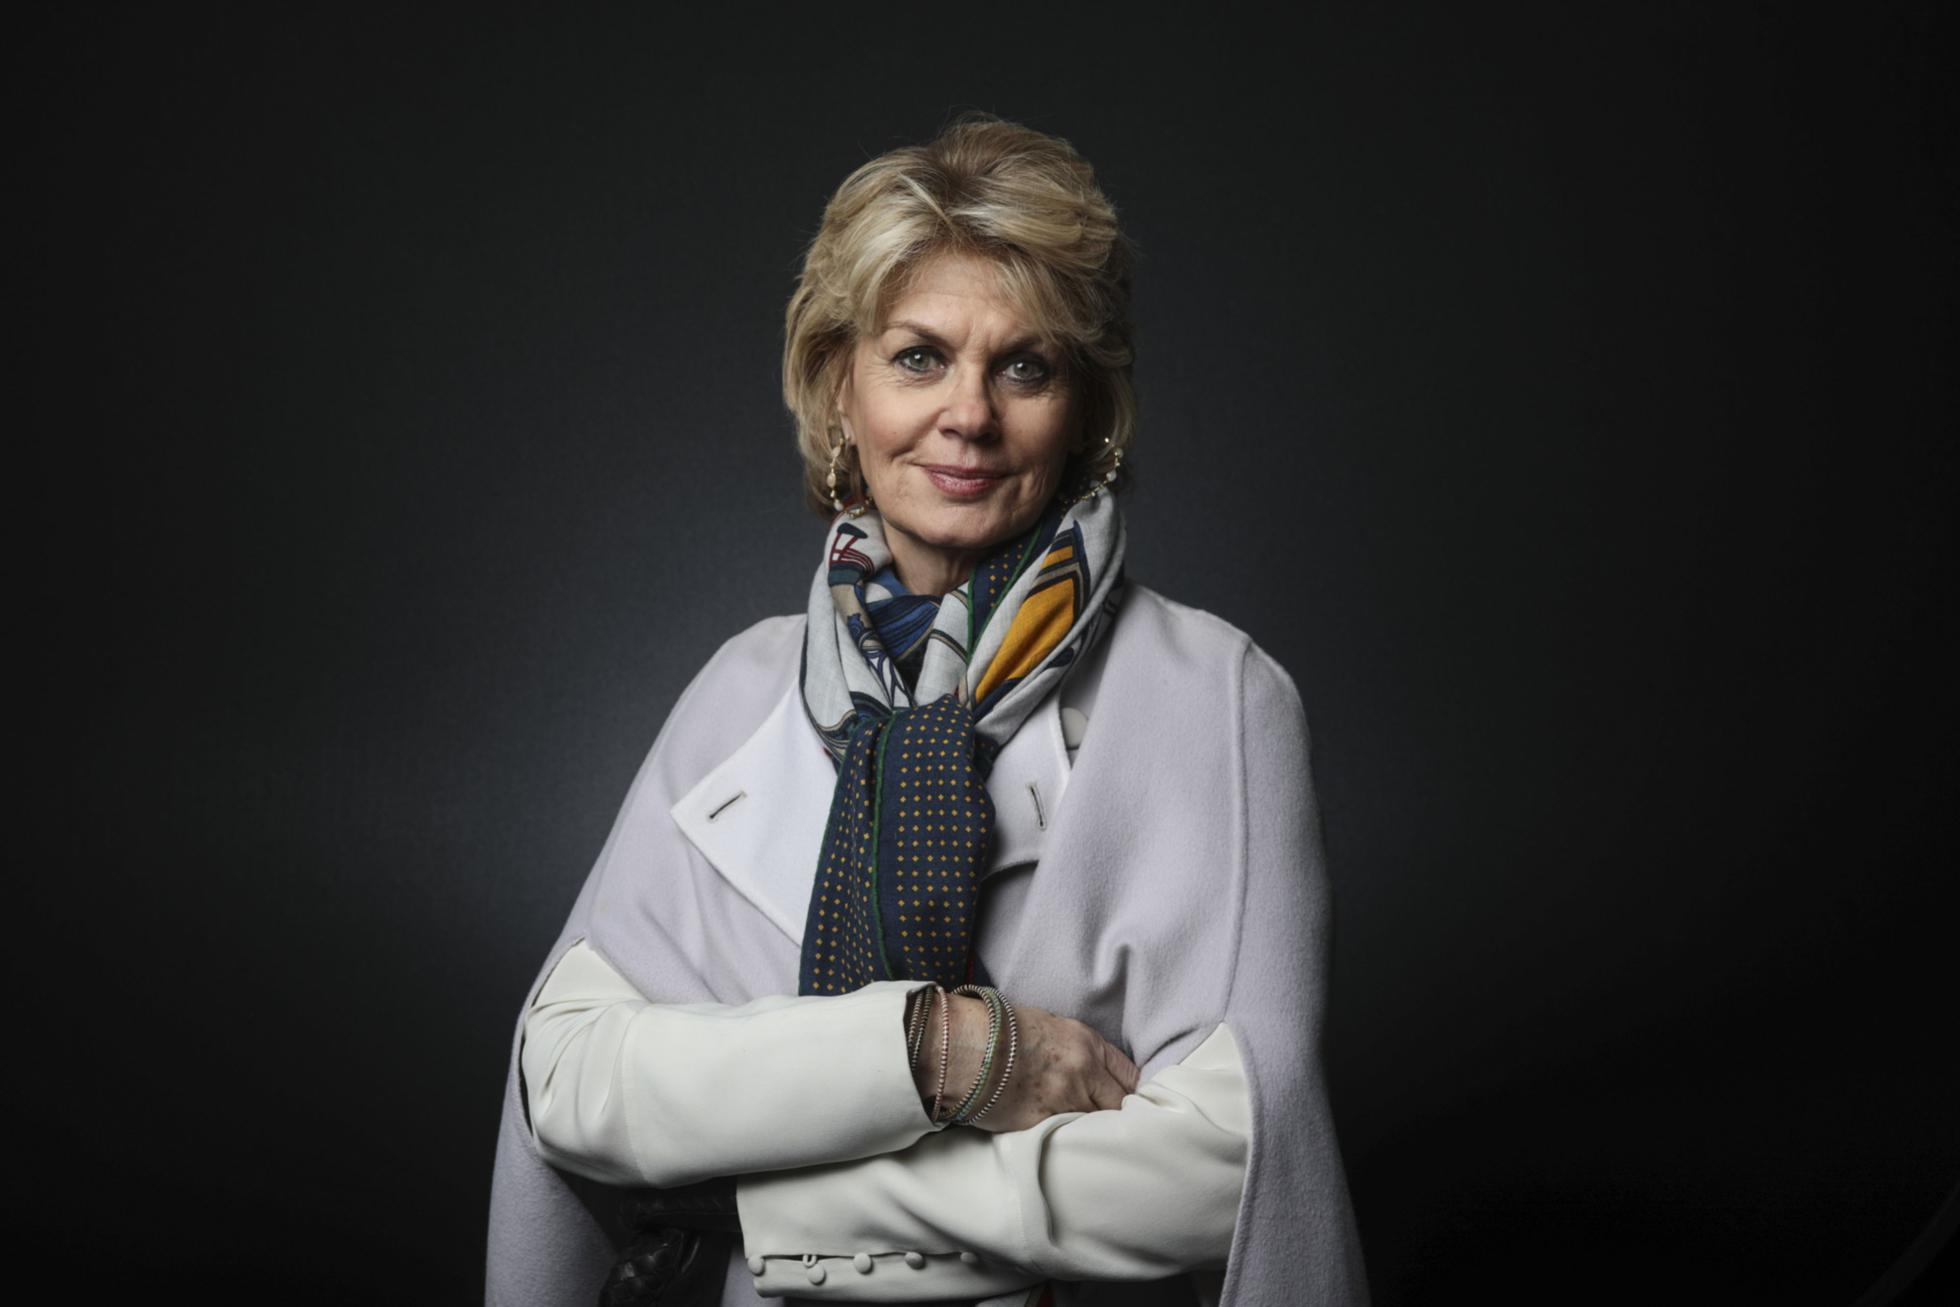 Anne Finucane, vice chairman of Bank of America